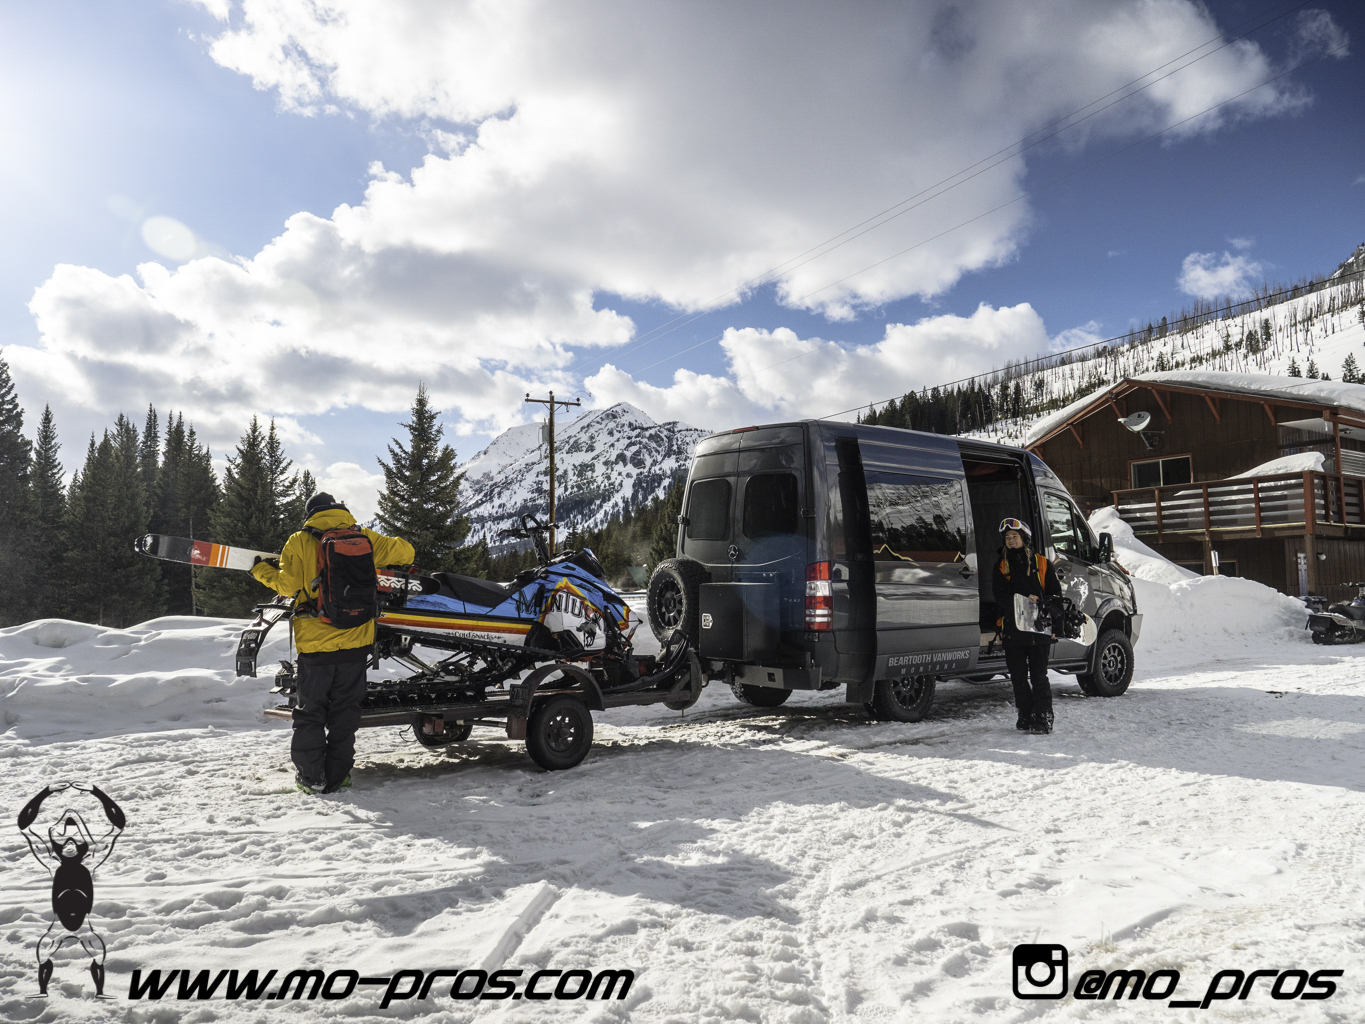 95_Ski_Snowbike_Timbersled Rack_Tsaina Rack_CFR rack_Cheetah Factory Racing_gas Rack_Gear_Gun Rack_LinQ Snowboard Ski_Snowboard rack_snowboard_Snowboarding_snowmobile bag_Snowmobile_timbersled bag_Ti.jpg